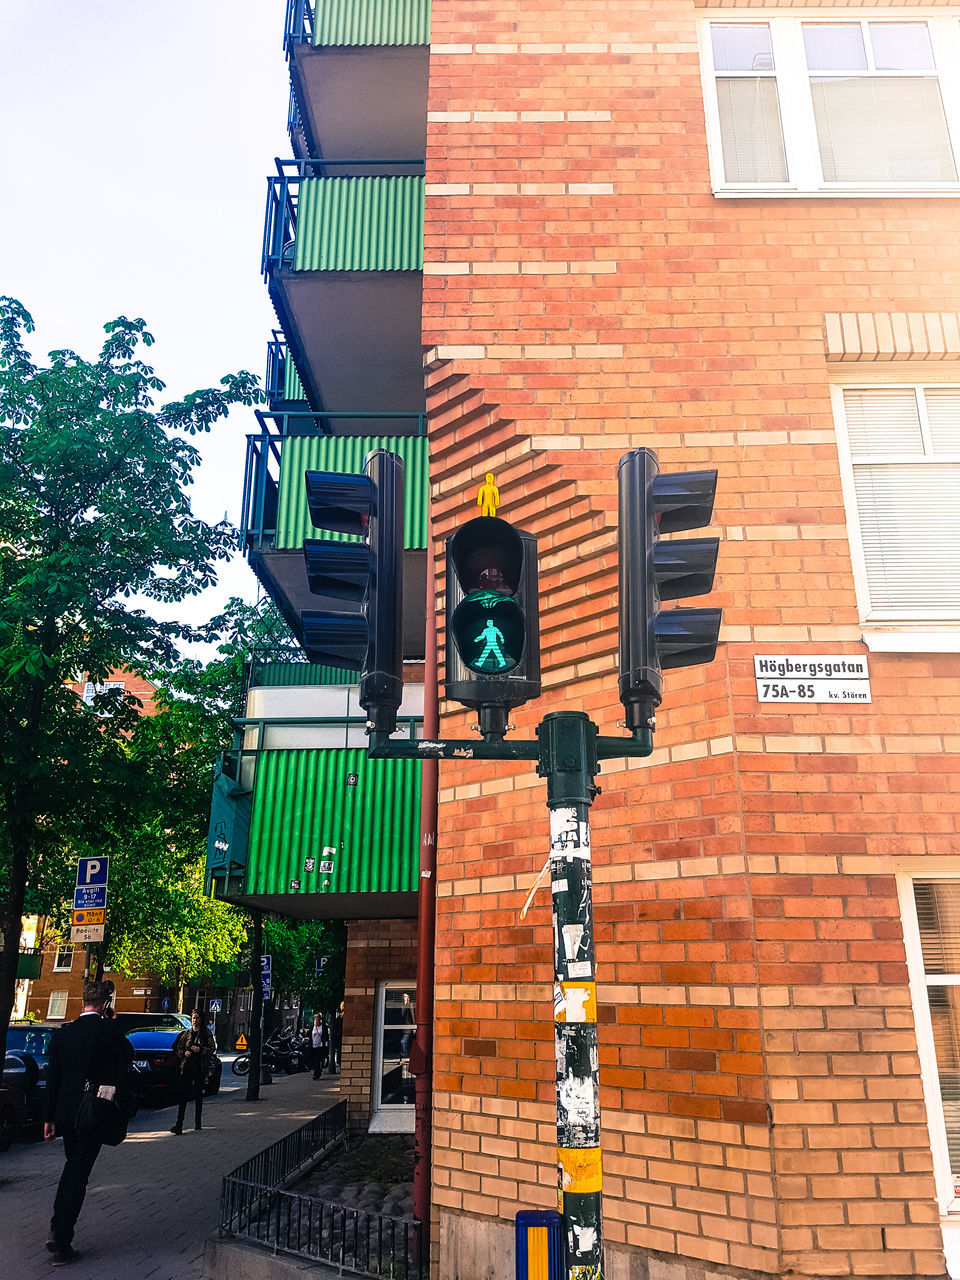 building exterior, traffic signal, traffic light, road sign, transportation, guidance, safety, outdoors, architecture, stoplight, day, built structure, low angle view, city, no people